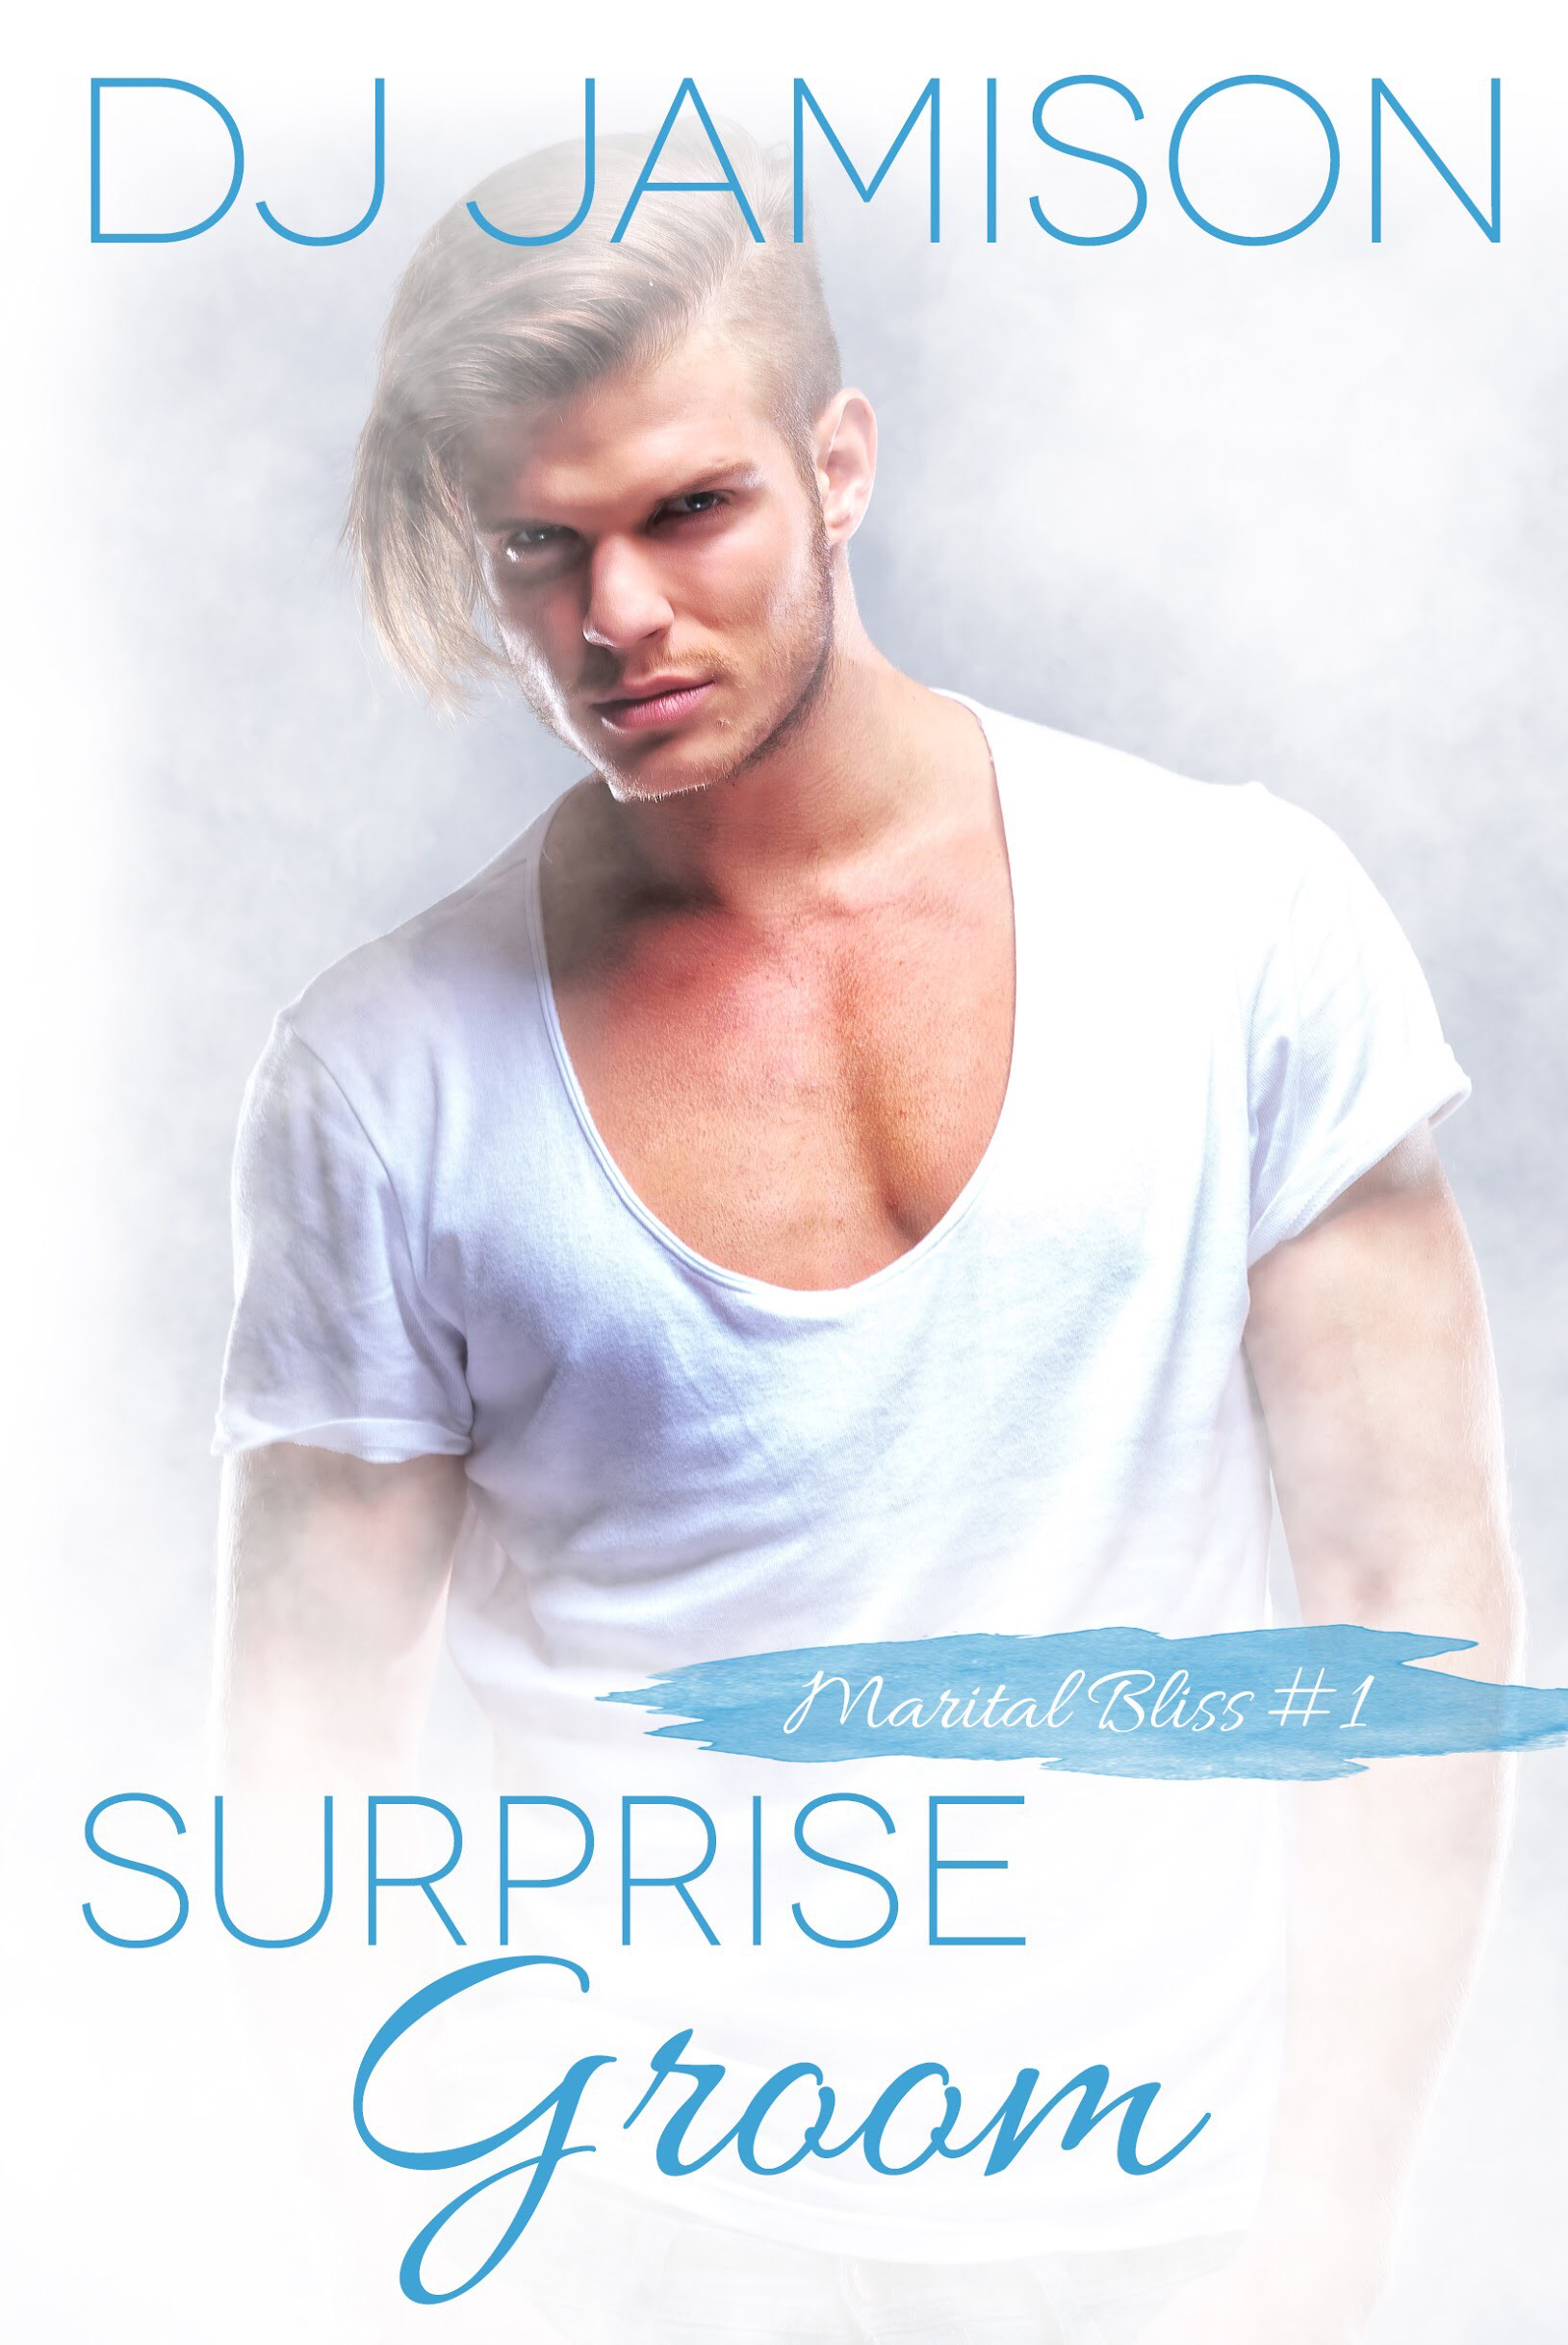 Guest Post and Giveaway: Surprise Groom by DJ Jamison